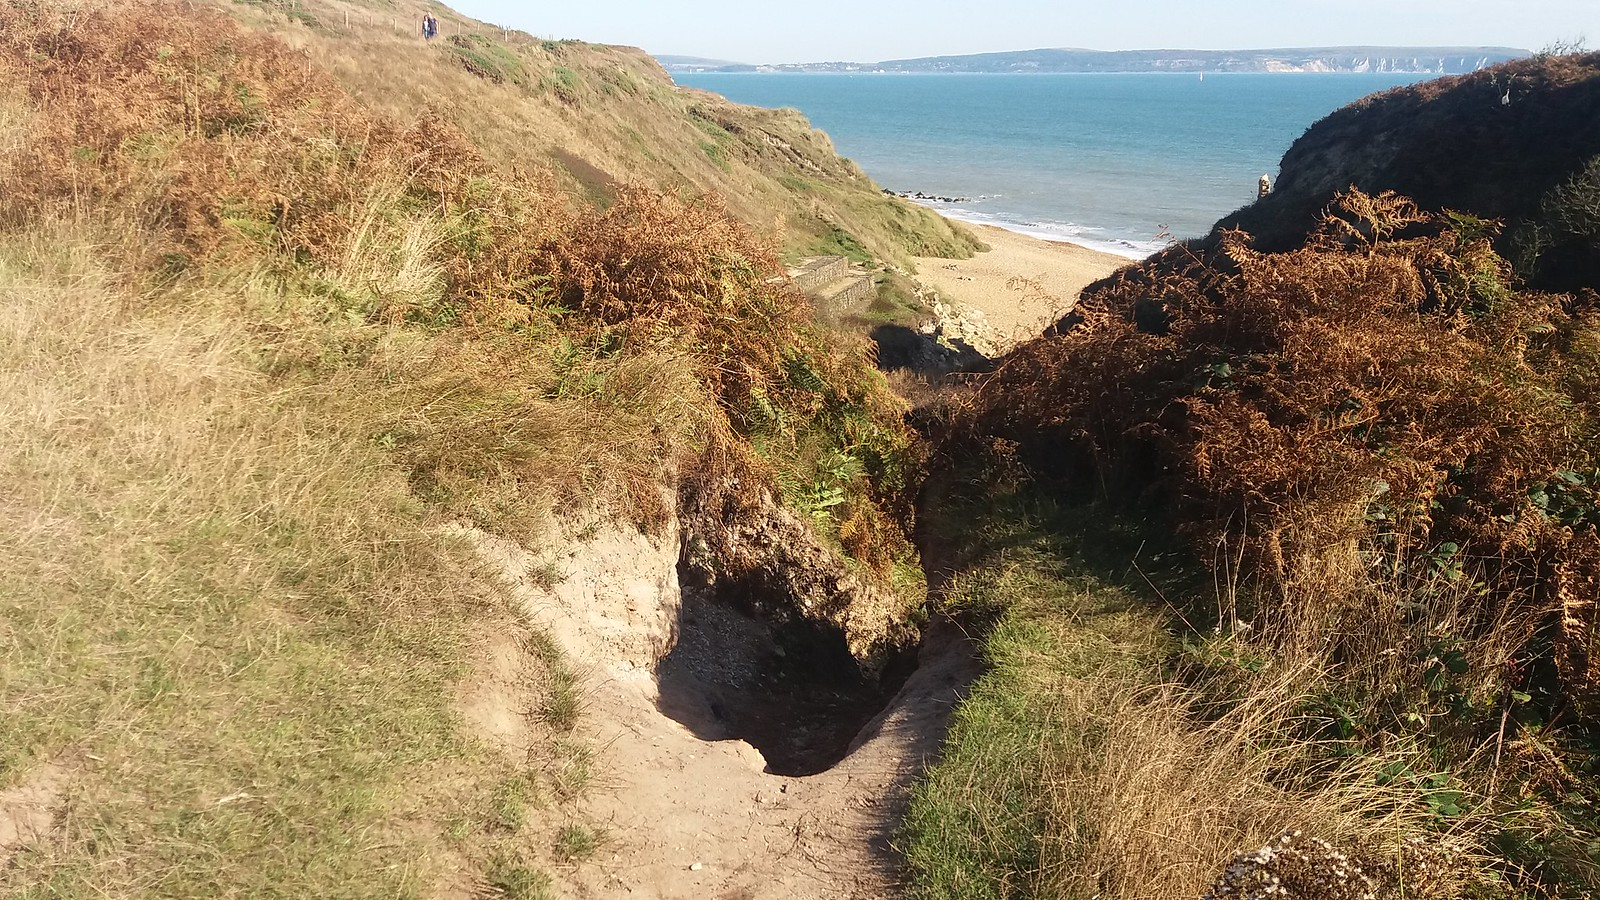 20160907_163718 Way down to Hordle Cliff beach